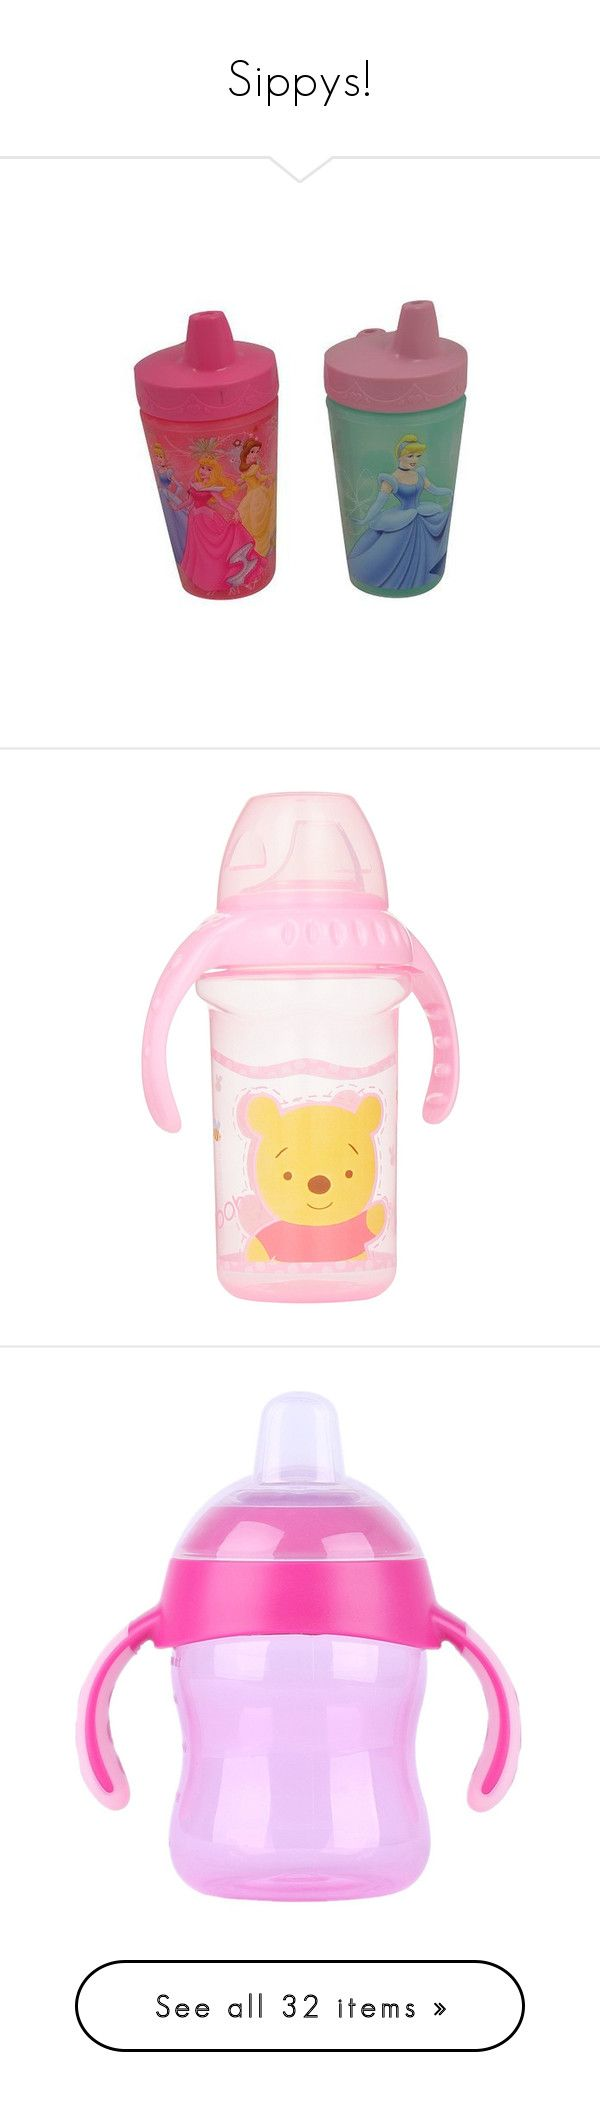 """""""Sippys!"""" by lildinokitten ❤ liked on Polyvore featuring baby, baby stuff, sippy cups, kids, baby boy, sippy cup, 55. bottles & cups., baby bottles, baby girl and bottles"""